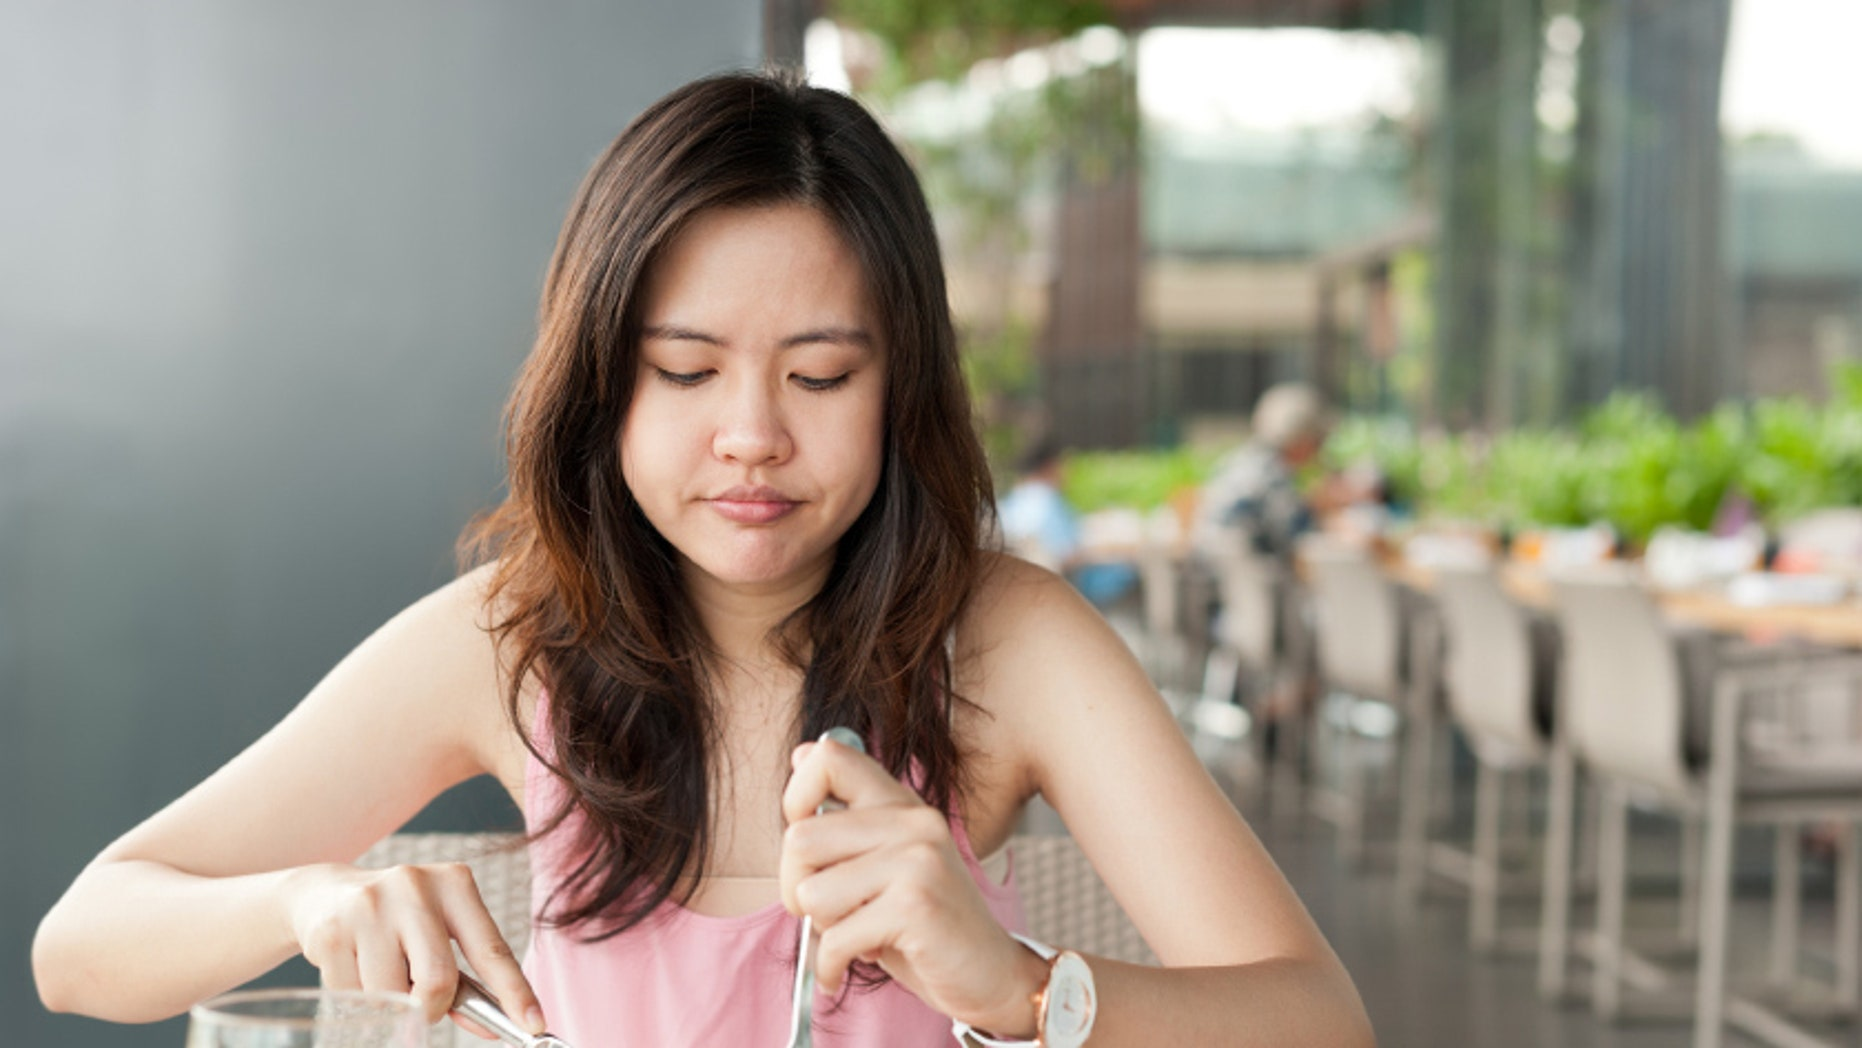 Dining alone is more common than ever in the U.S.